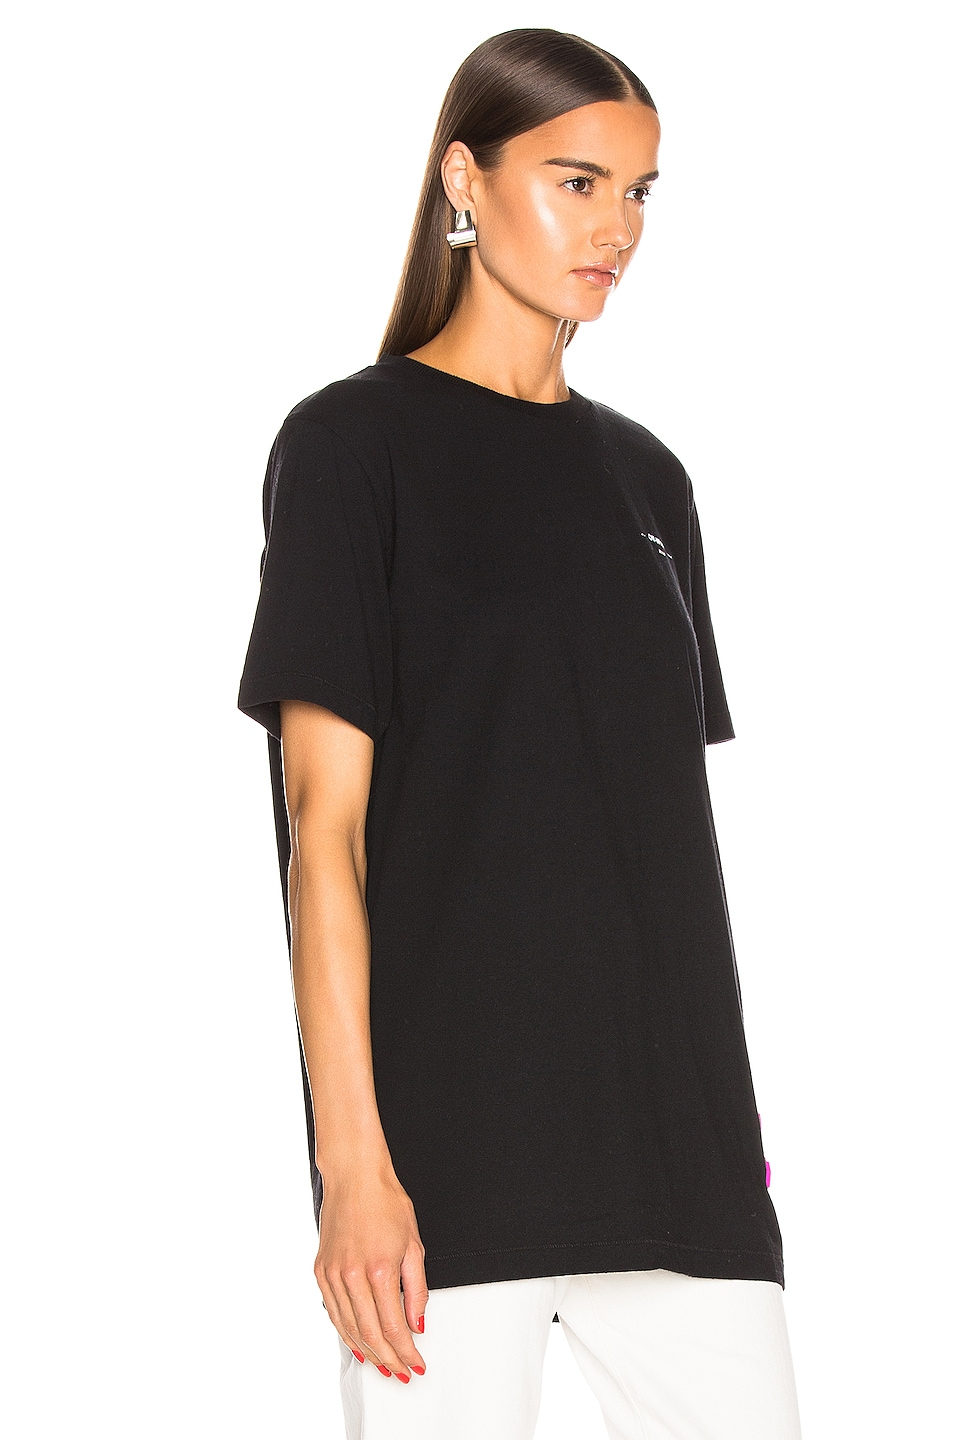 Image 3 of OFF-WHITE FWRD EXCLUSIVE Short Sleeve Tee in Black